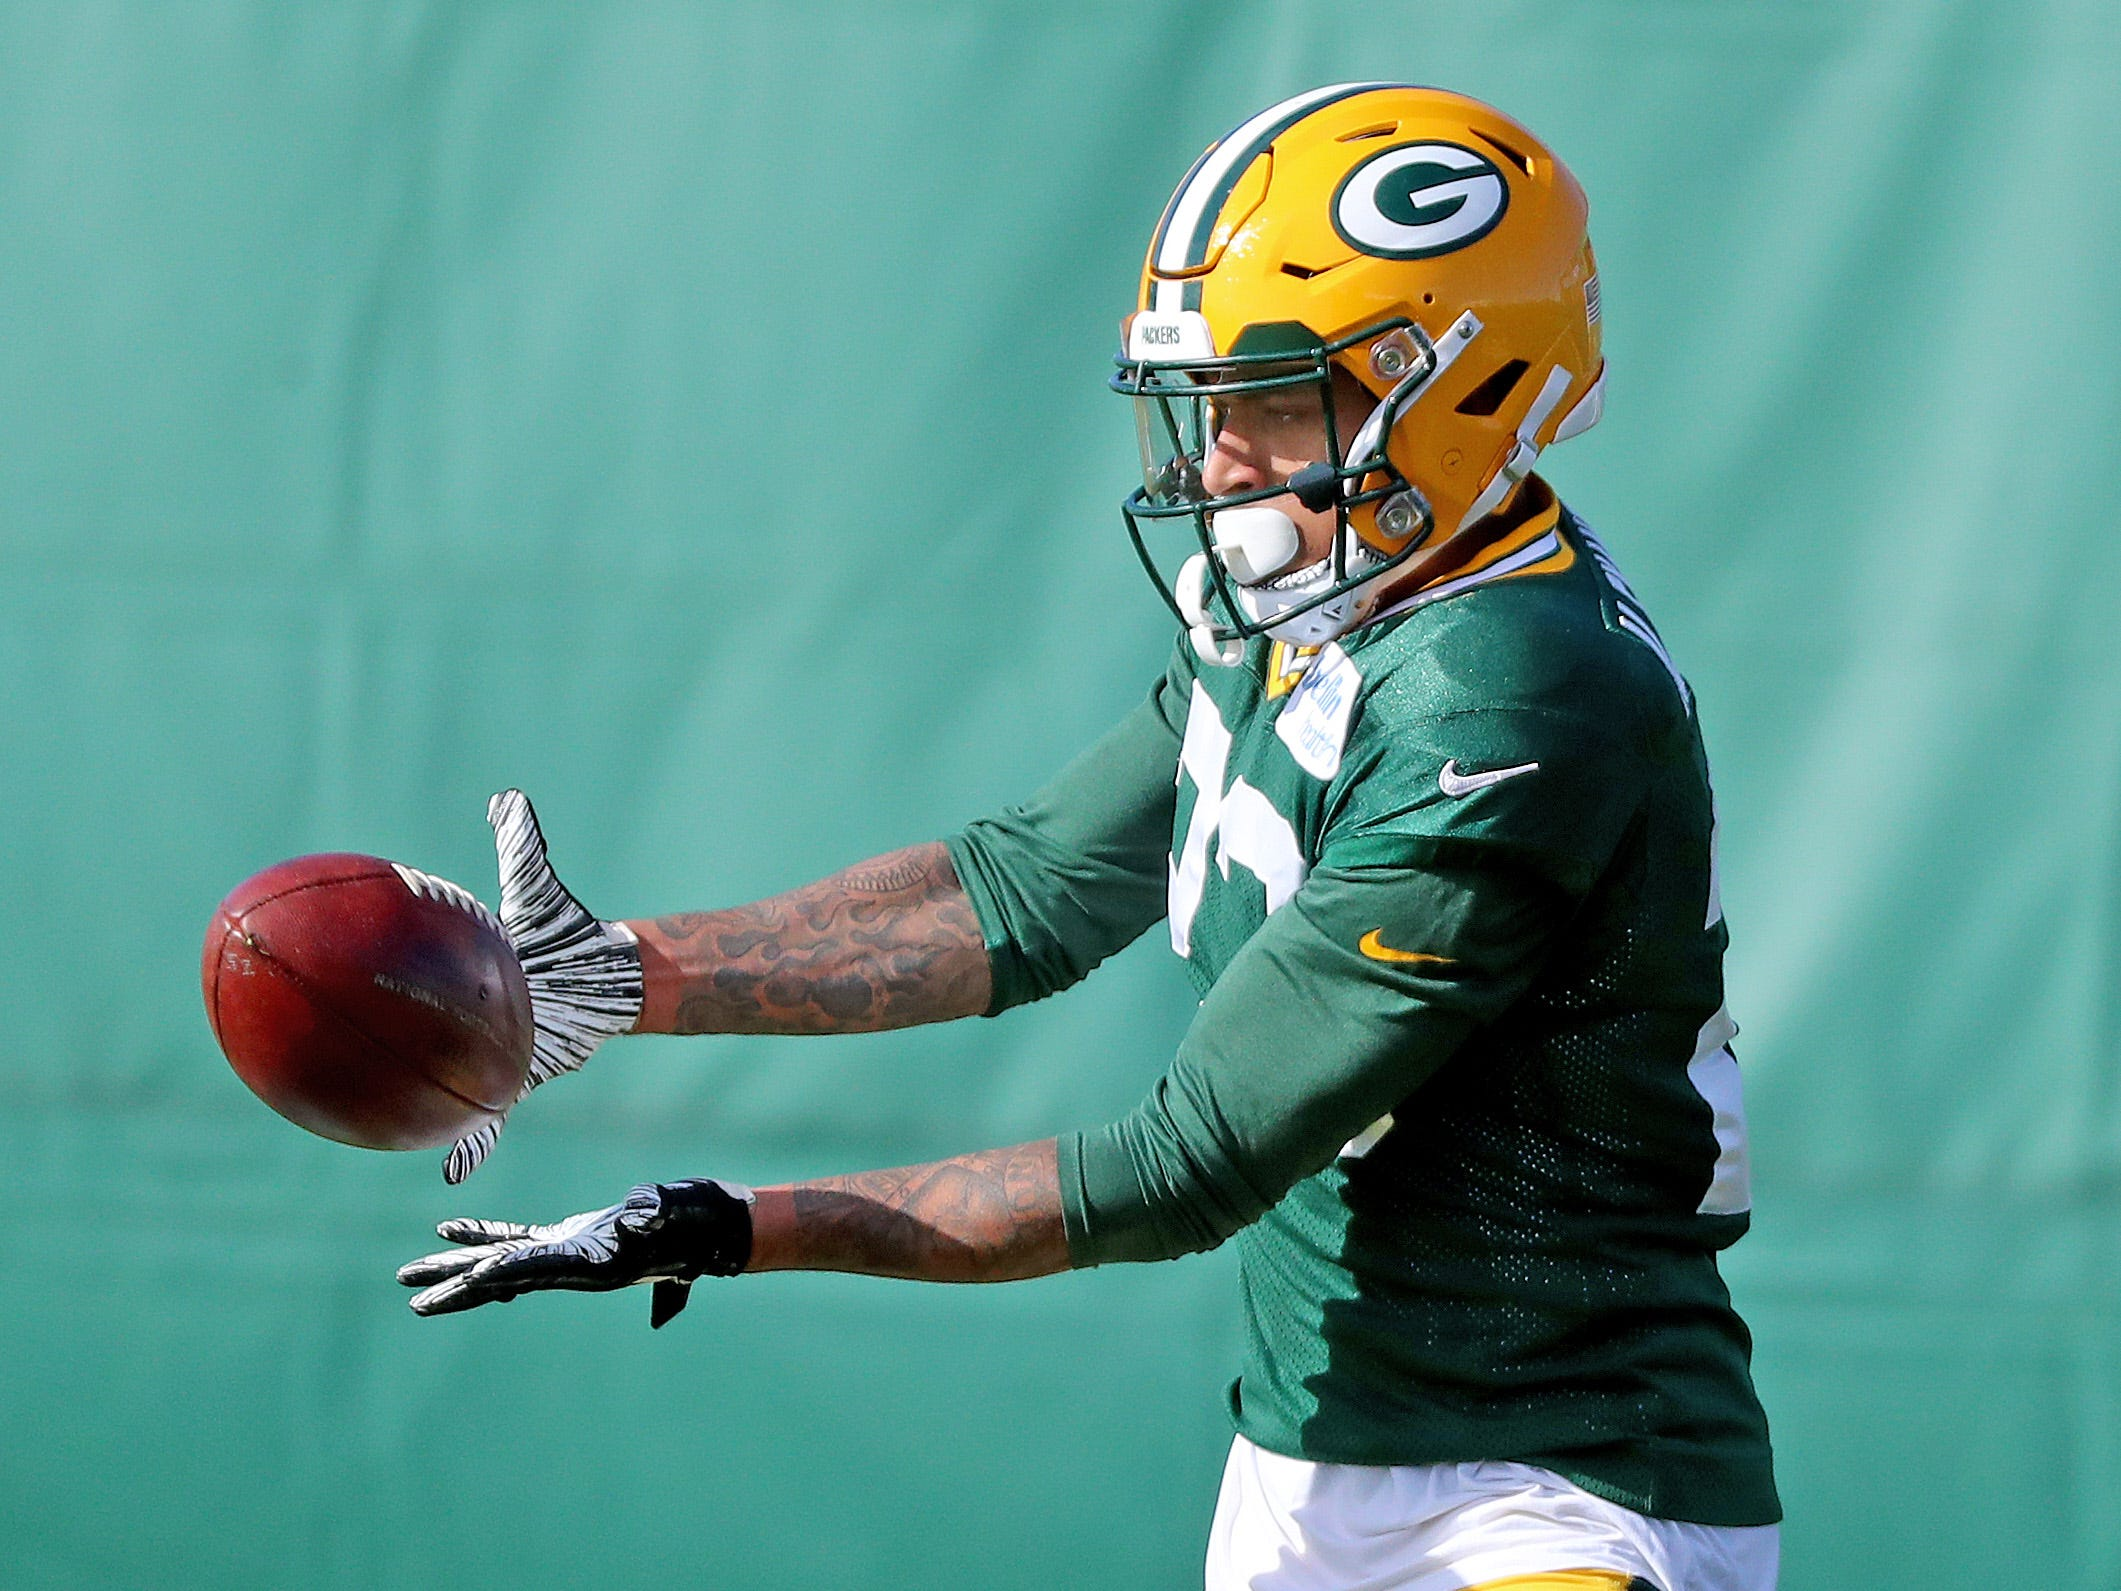 Green Bay Packers cornerback Jaire Alexander (23) during practice on Clarke Hinkle Field Thursday, November 1, 2018 in Ashwaubenon, Wis.